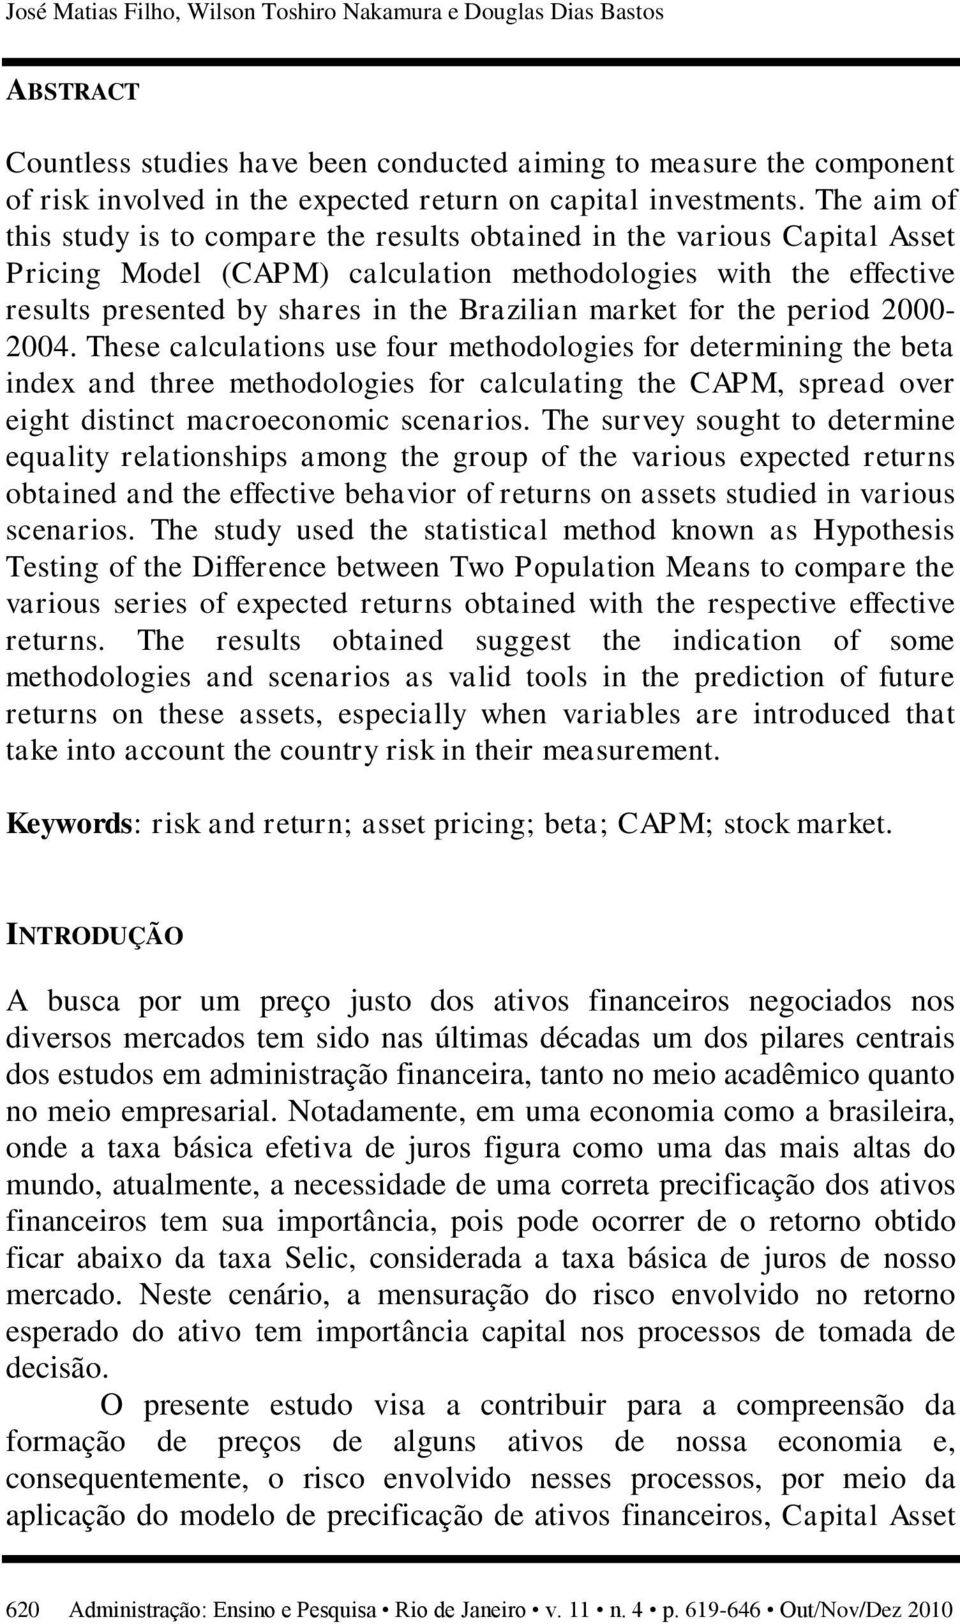 The aim of this study is to compare the results obtained in the various Capital Asset Pricing Model (CAPM) calculation methodologies with the effective results presented by shares in the Brazilian